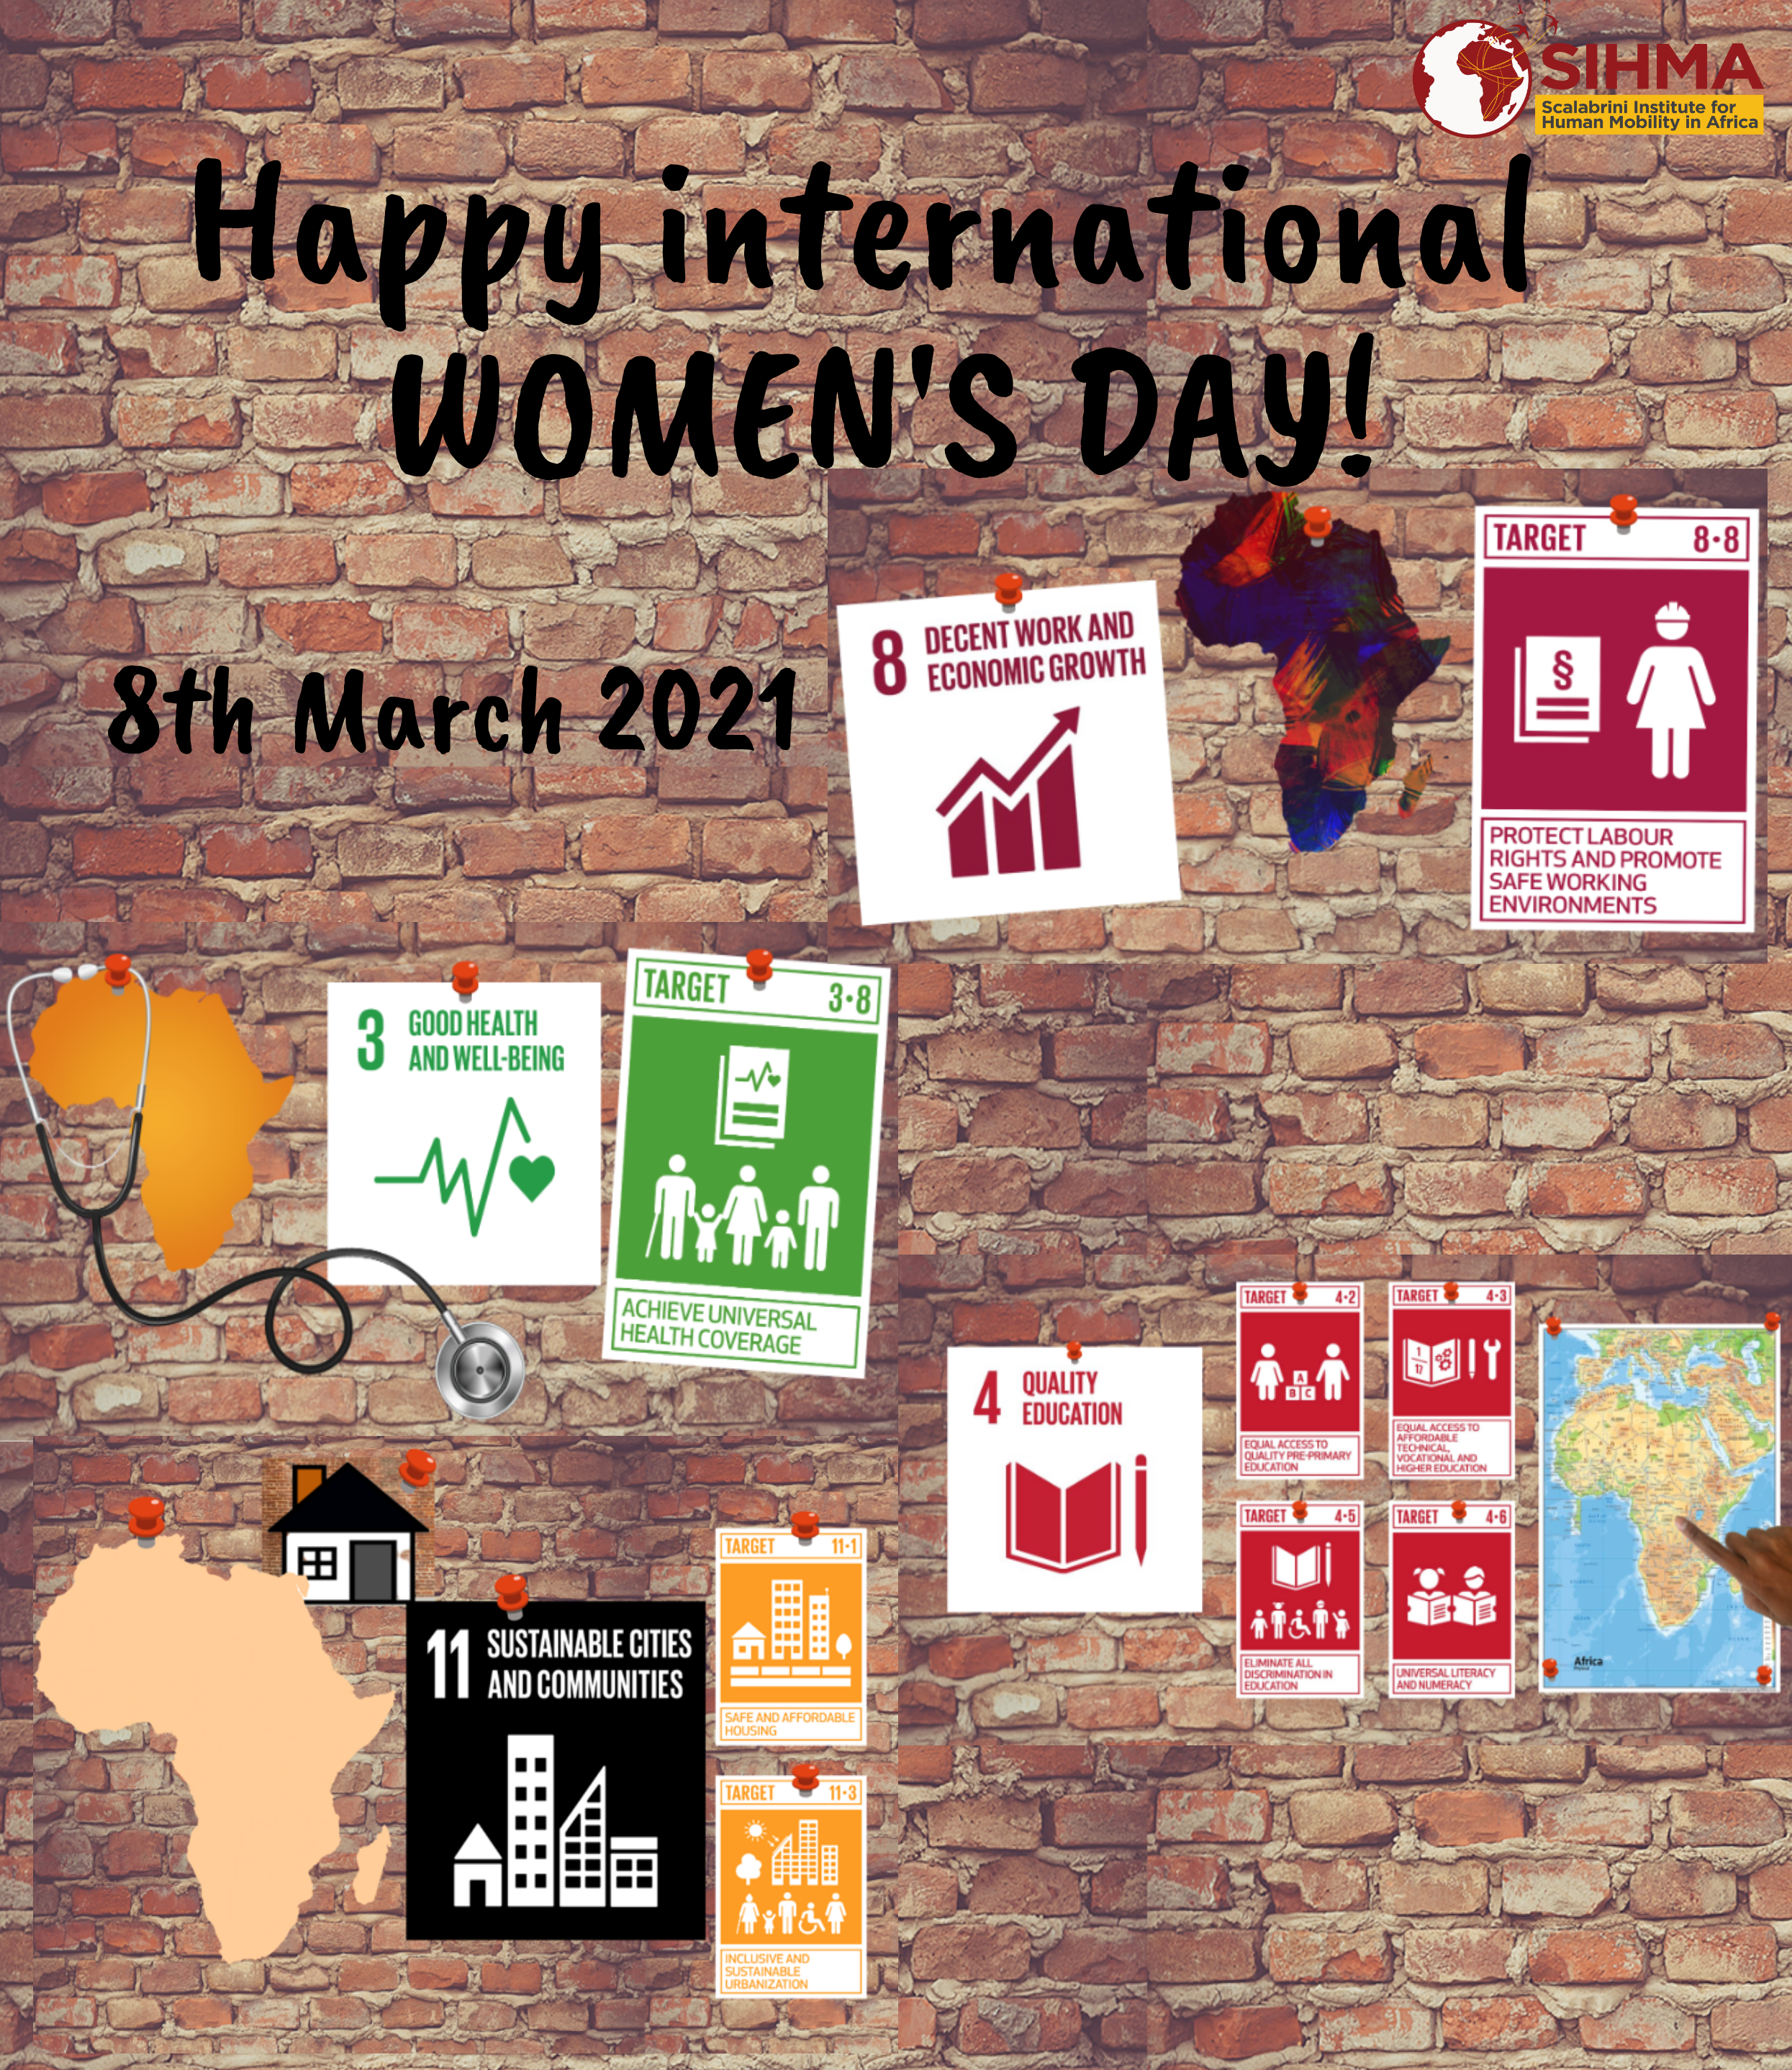 https://www.sihma.org.za/photos/shares/women-series_2910912.png